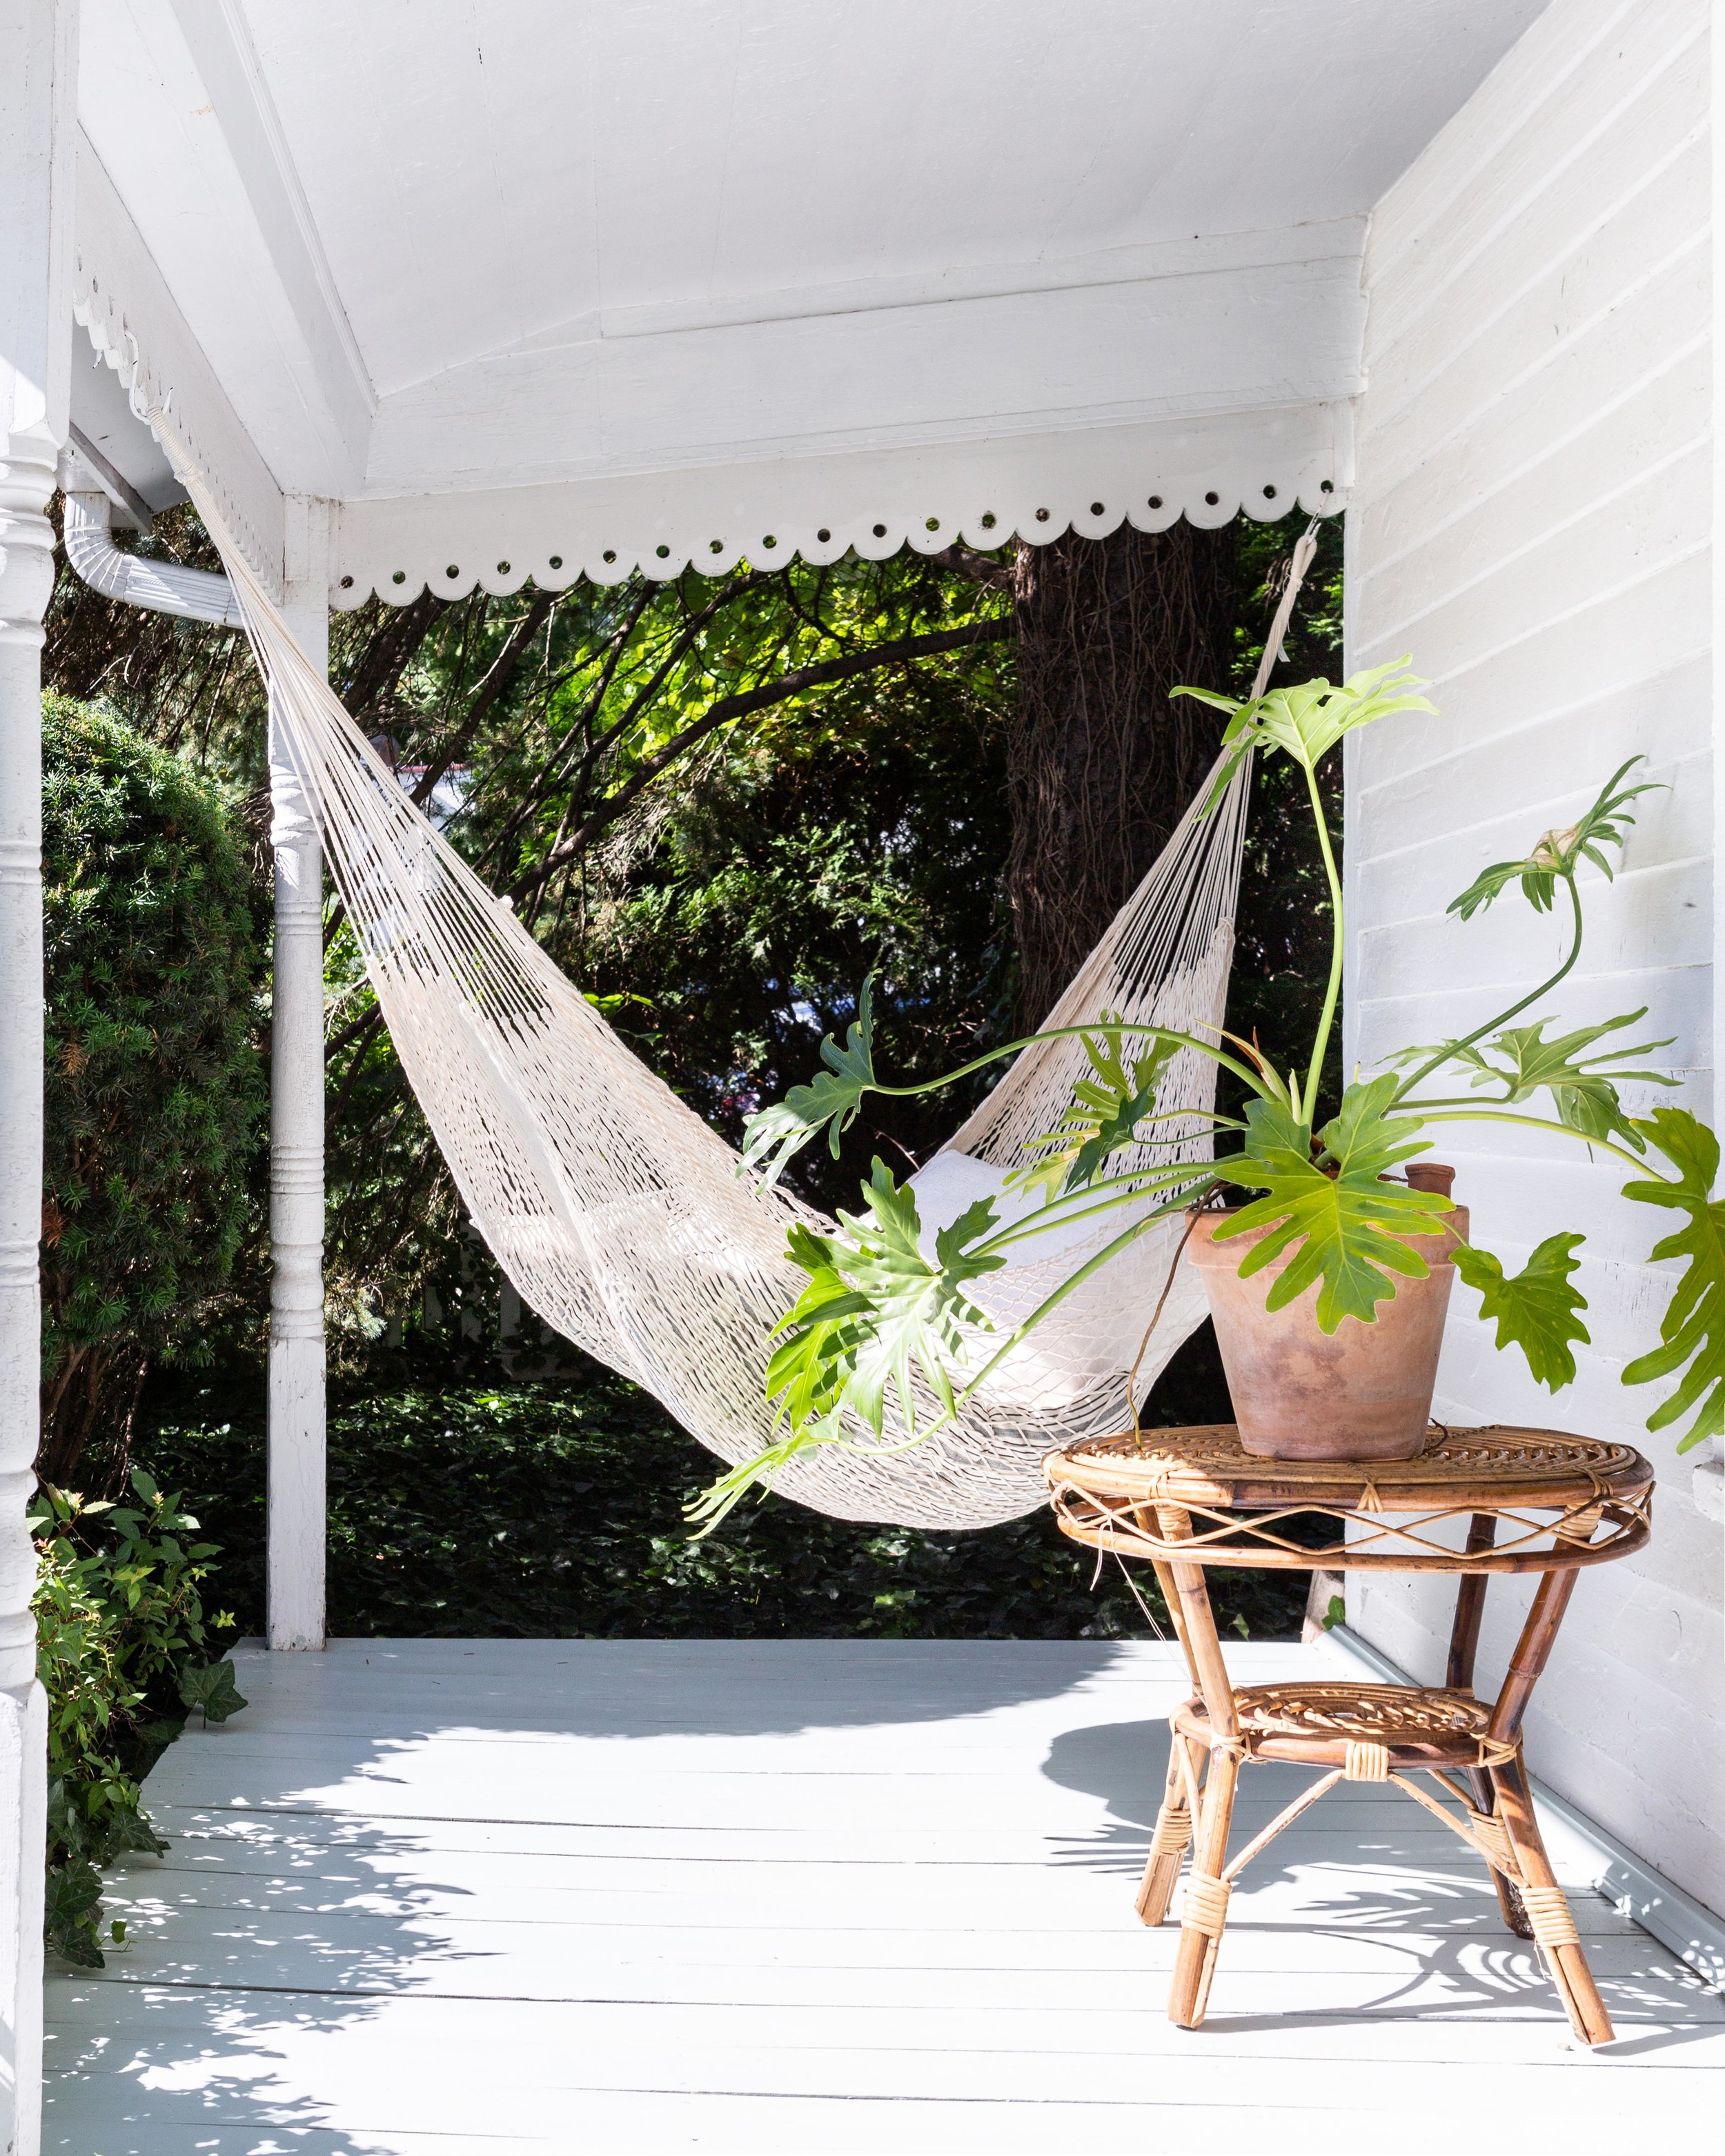 """Prewitt keeps a hammock hung in front of AP Shop. """"A lot of our goods are handcrafted in different places, like Mexico,"""" she says, """"and it echoes that handicraft aspect of our business."""""""